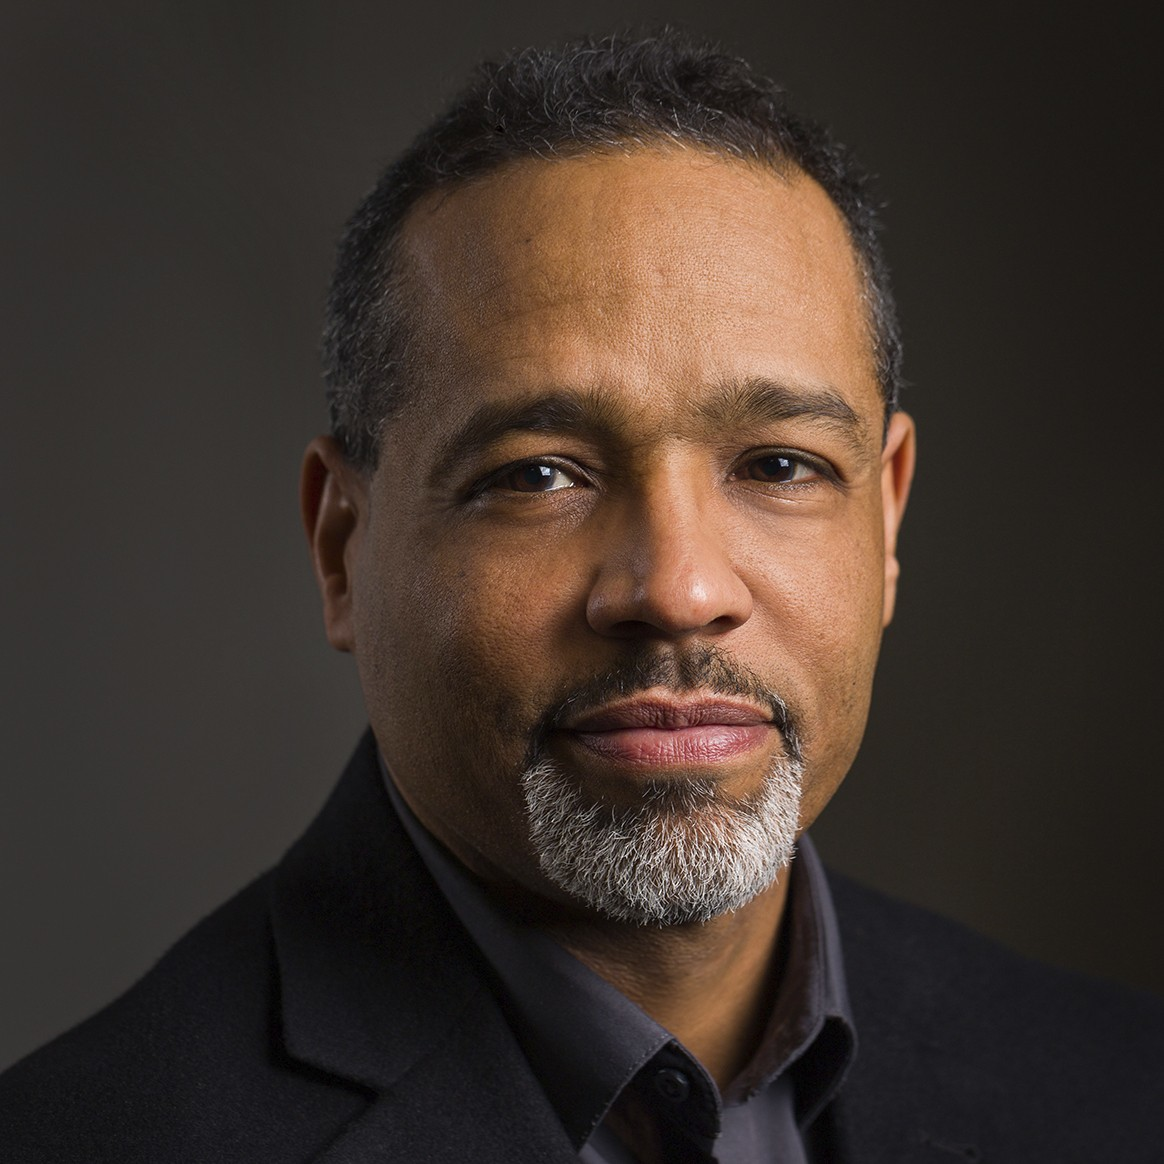 Headshot of B. Stephen Carpenter II, Dean of the Penn State College of Arts and Architecture